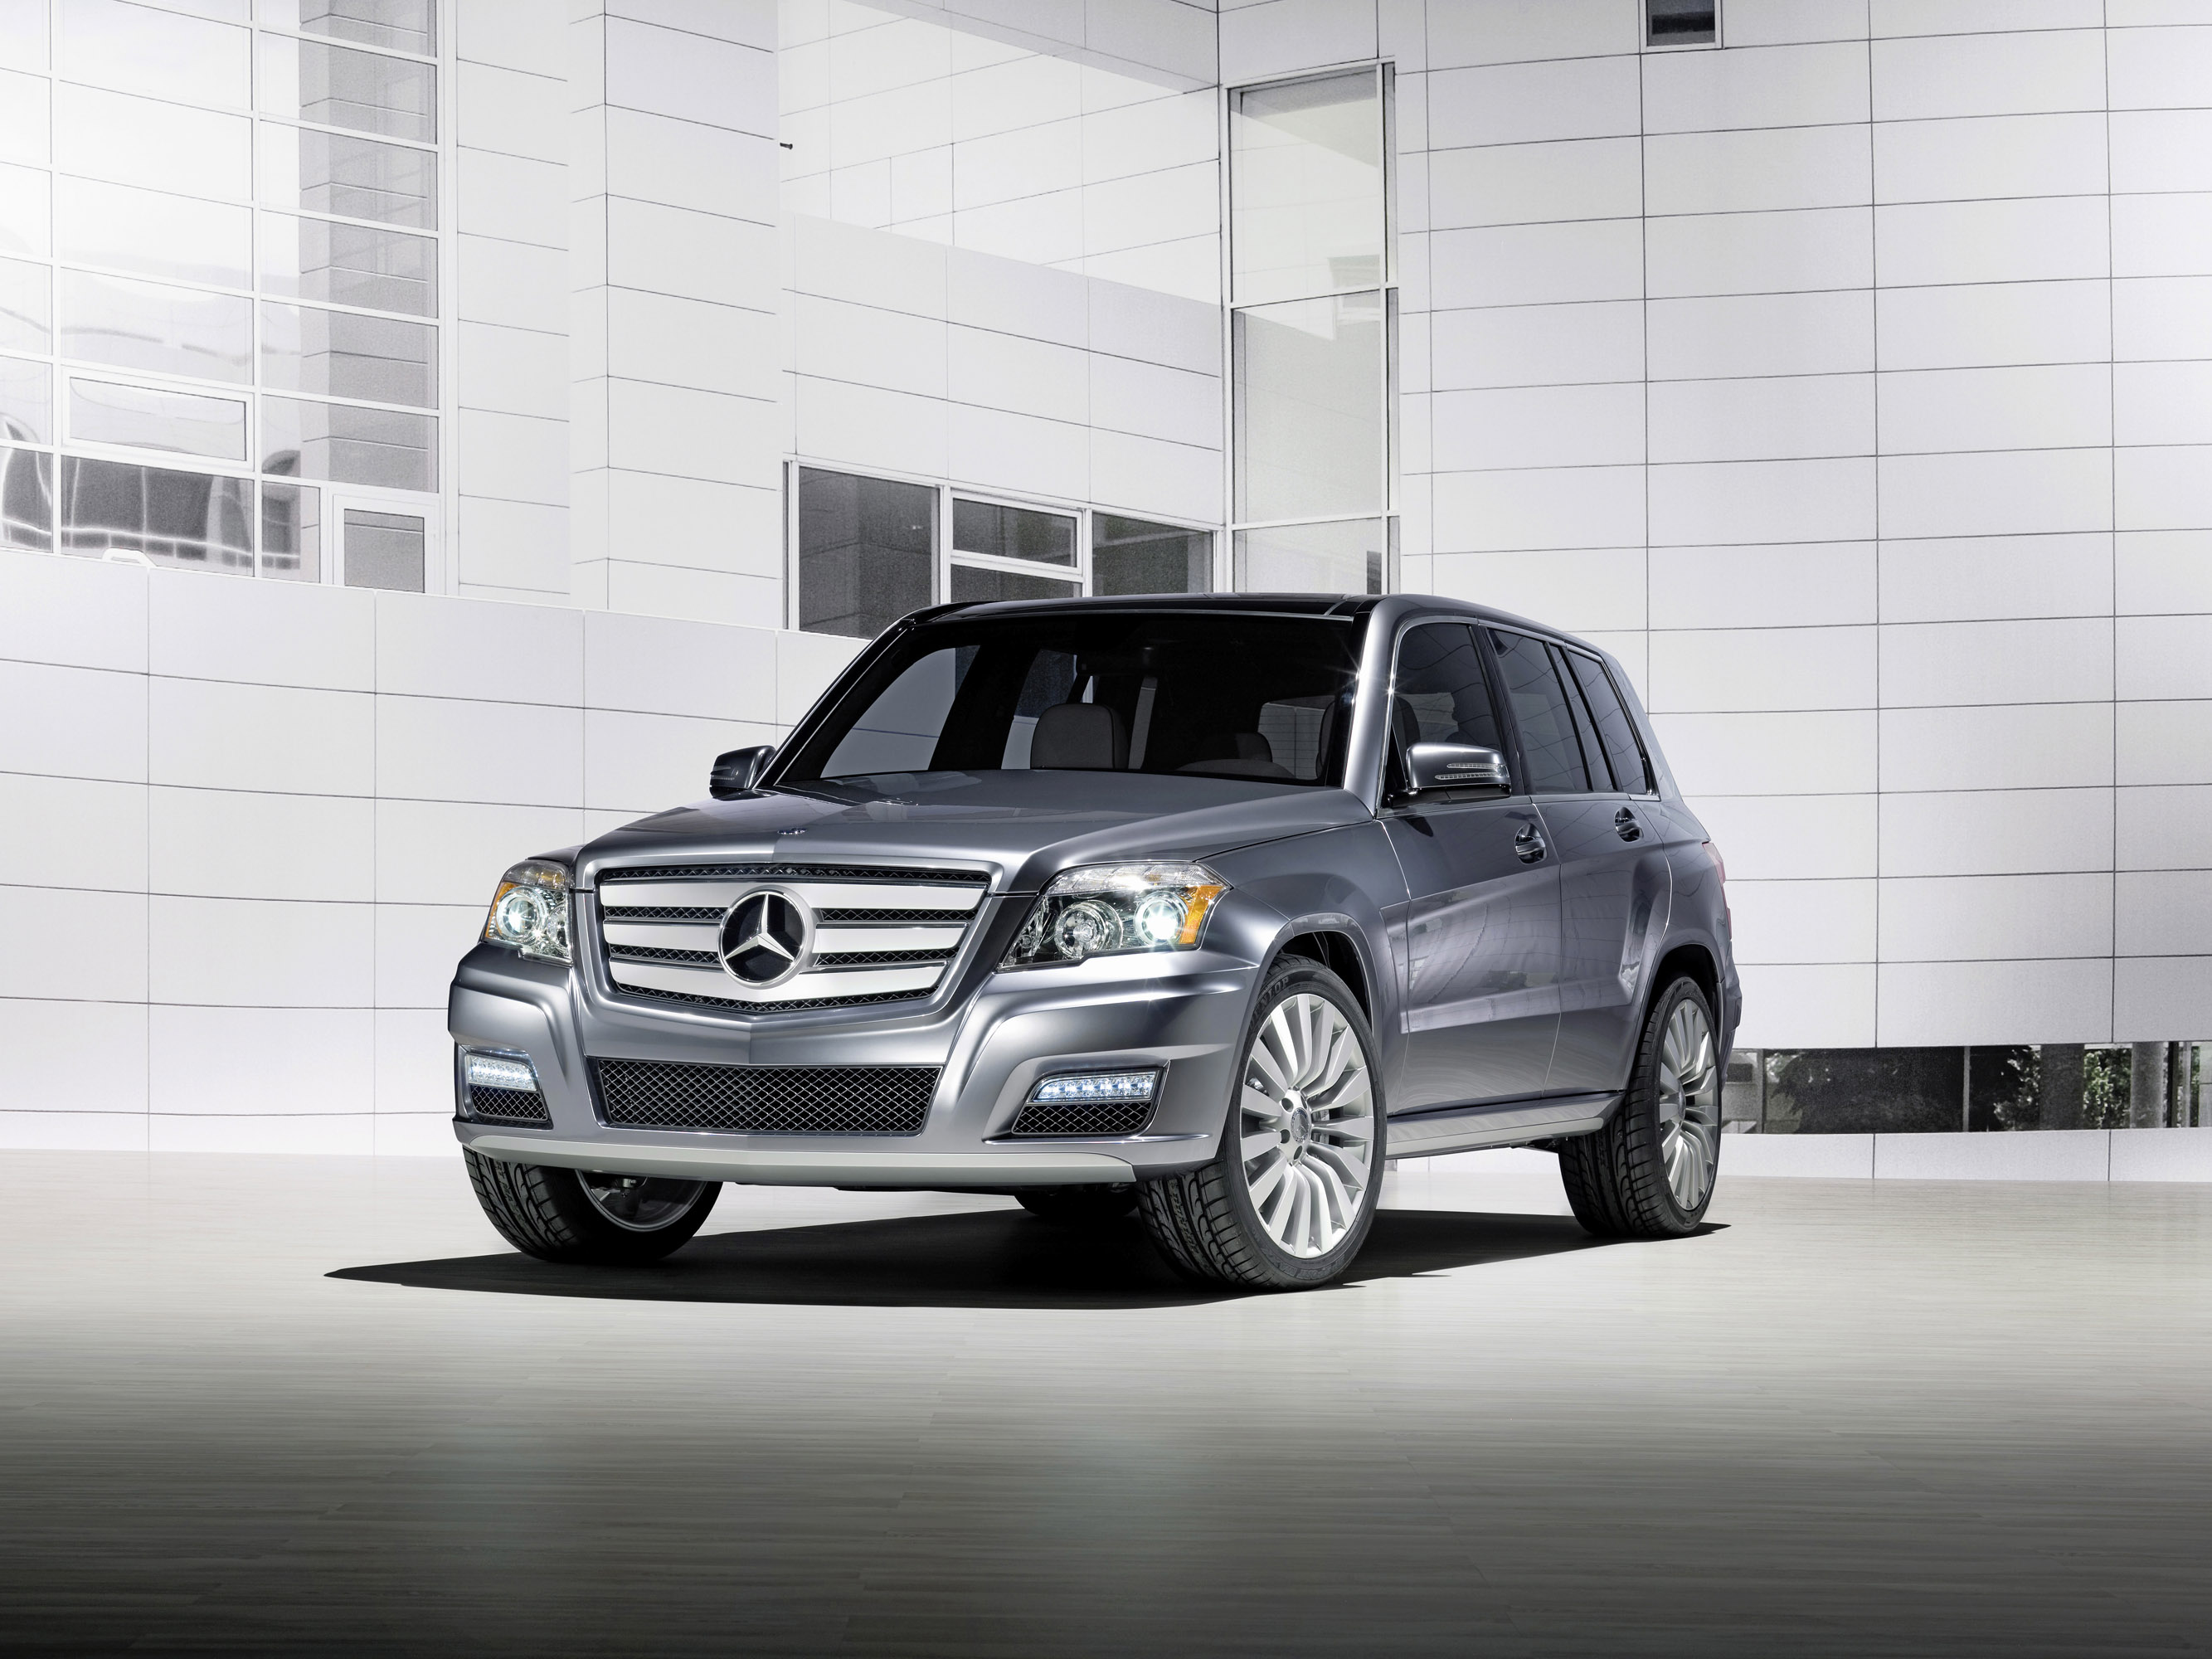 2008 mercedes benz glk townside concept hd pictures for Mercedes benz glk 2008